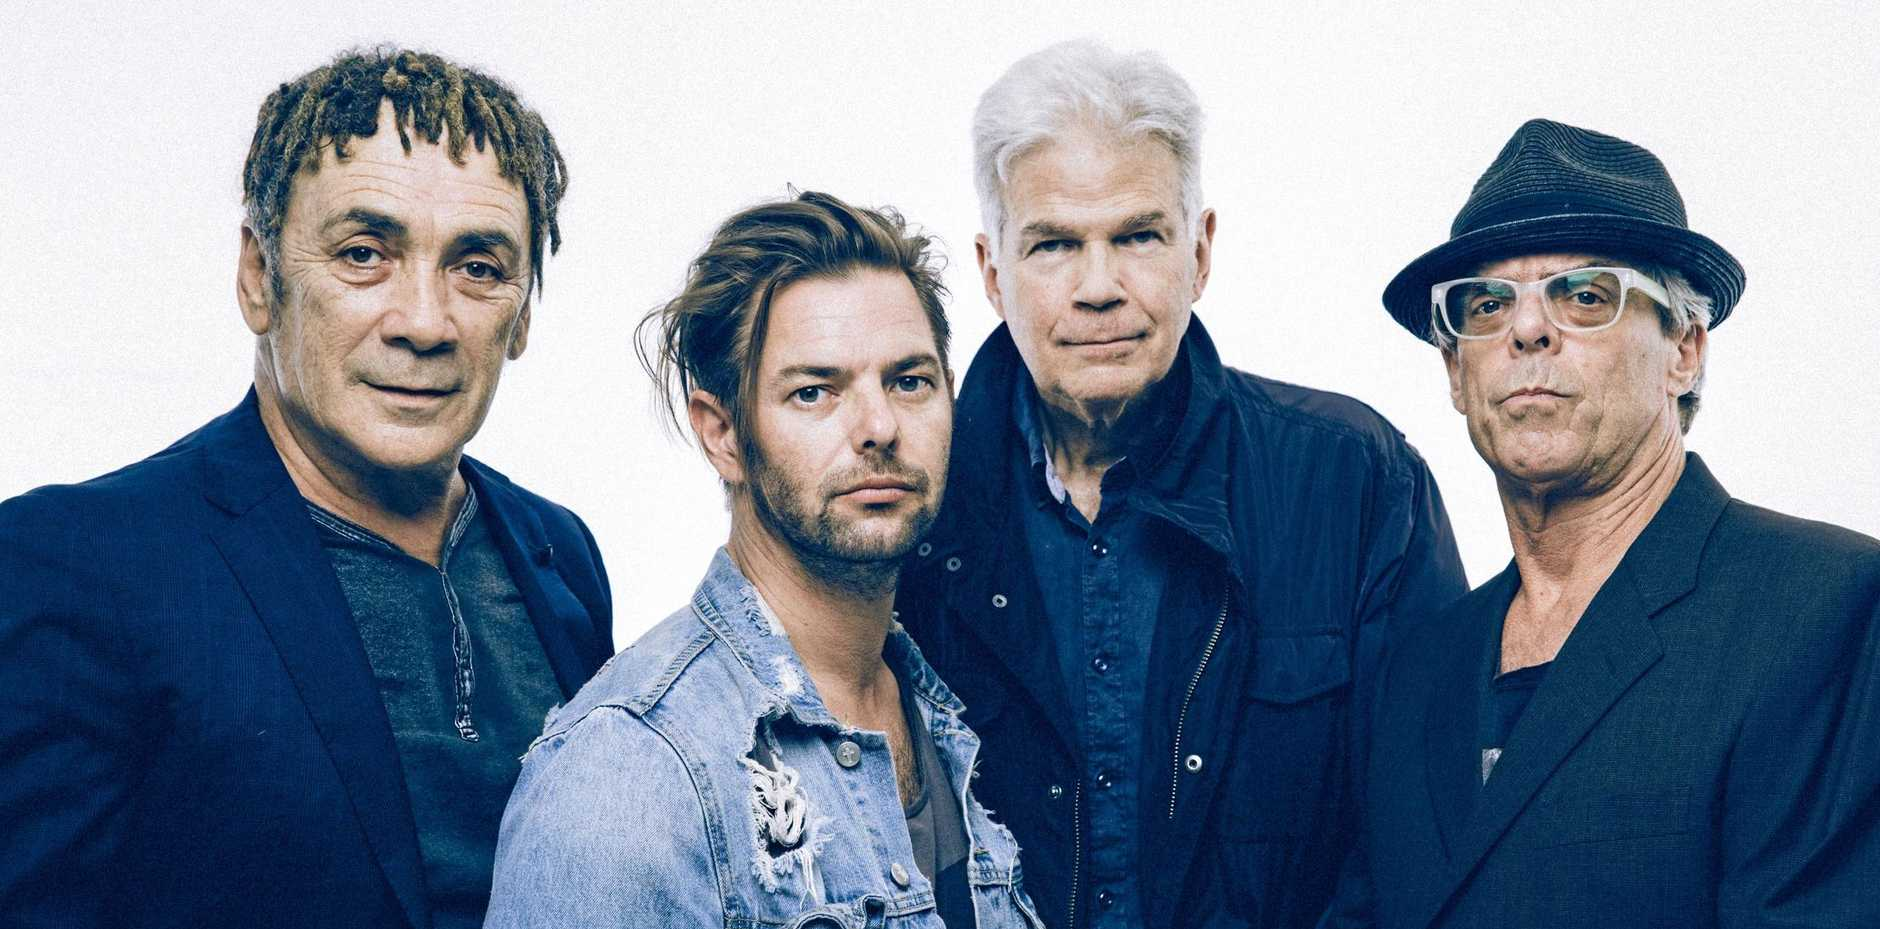 TOURING: The current Dragon line up are Todd Hunter on bass guitar and vocals, Mark Williams on vocals and guitar, Bruce Reid on guitar and Pete Drummond on drums, vocals and keyboards.